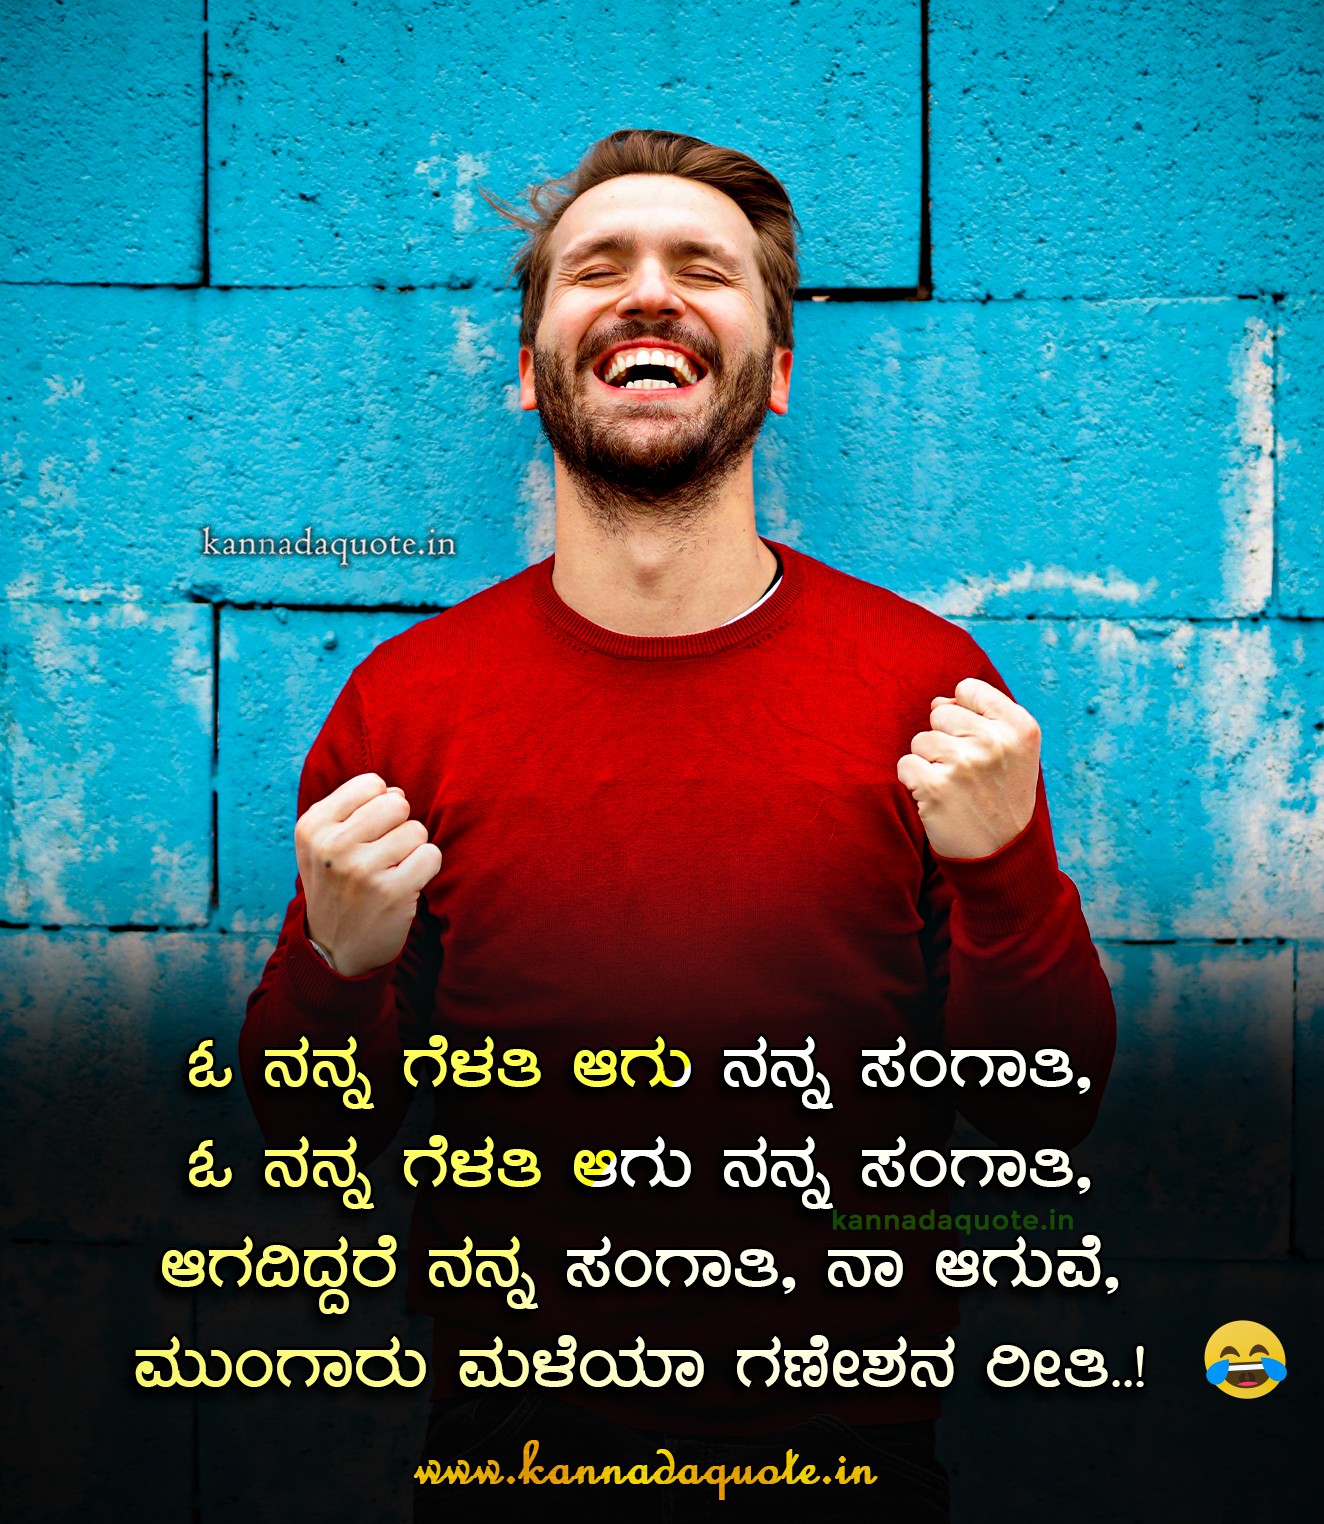 Kannada Funny Kavanagalu About Love With Image Download For Sharechat Image Funny Love